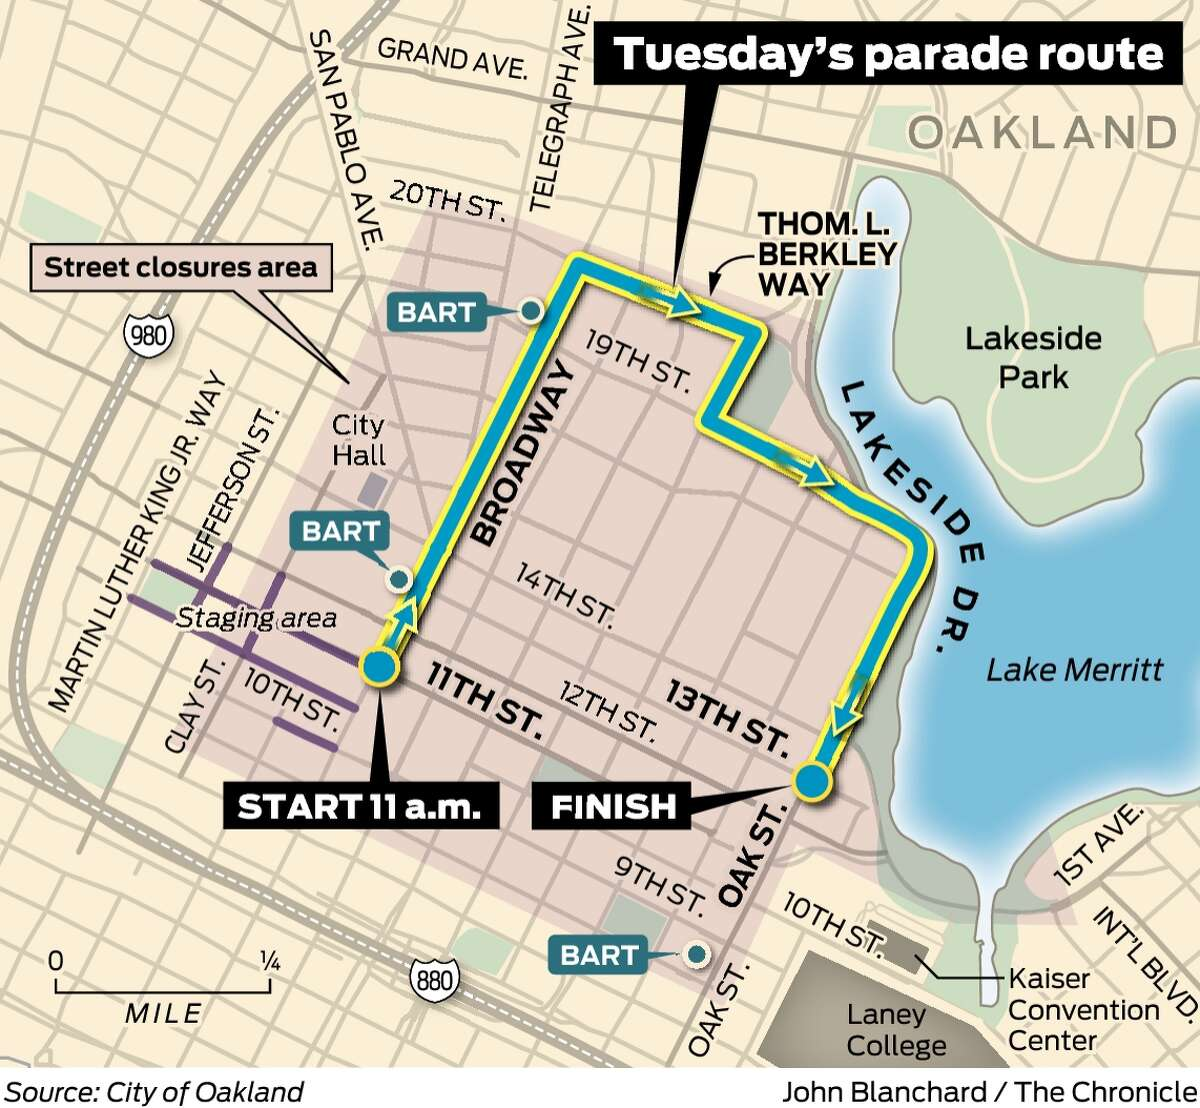 The Warriors' championship parade route for Tuesday.